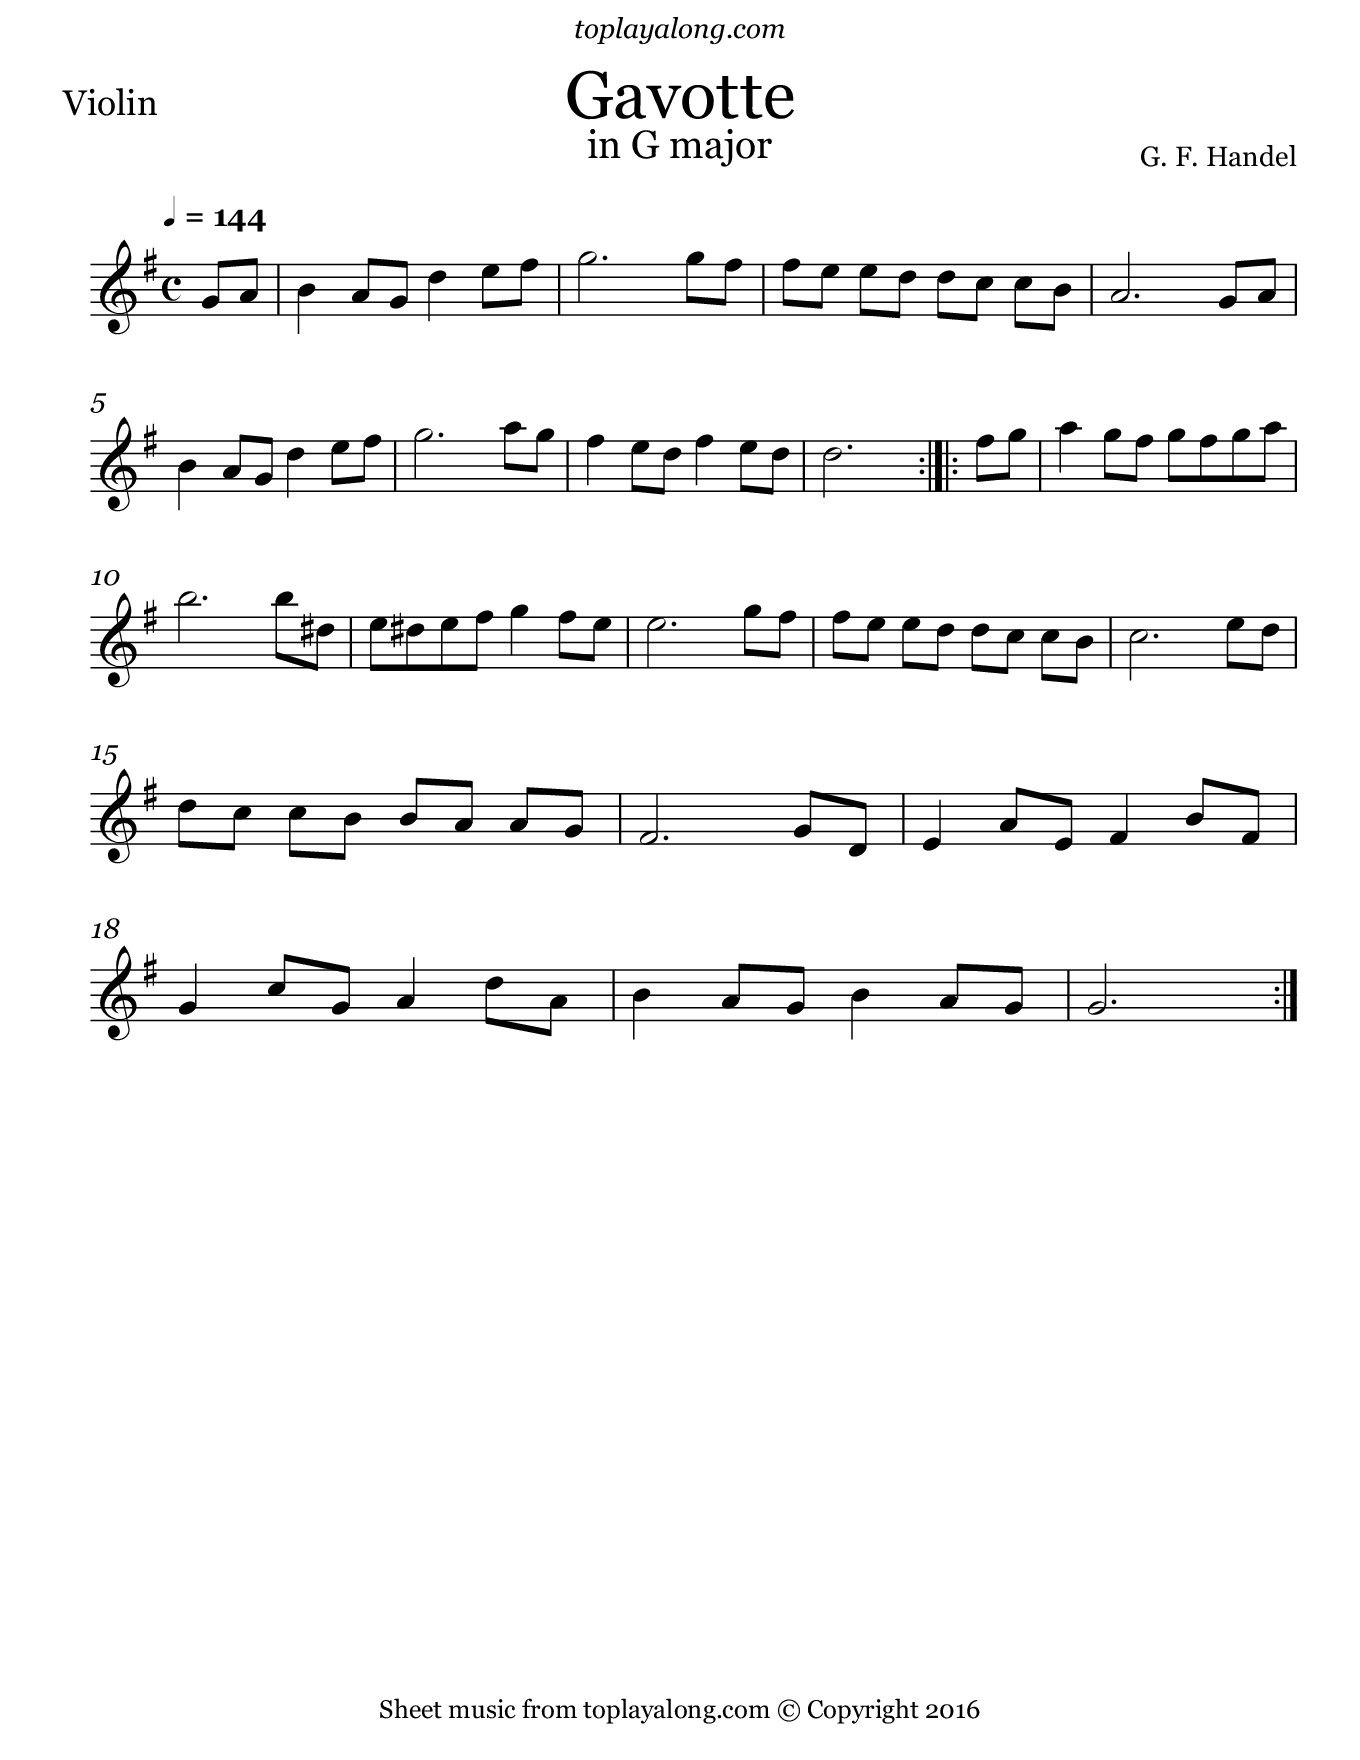 Gavotte in G major by Handel. Sheet music for Violin, page 1.